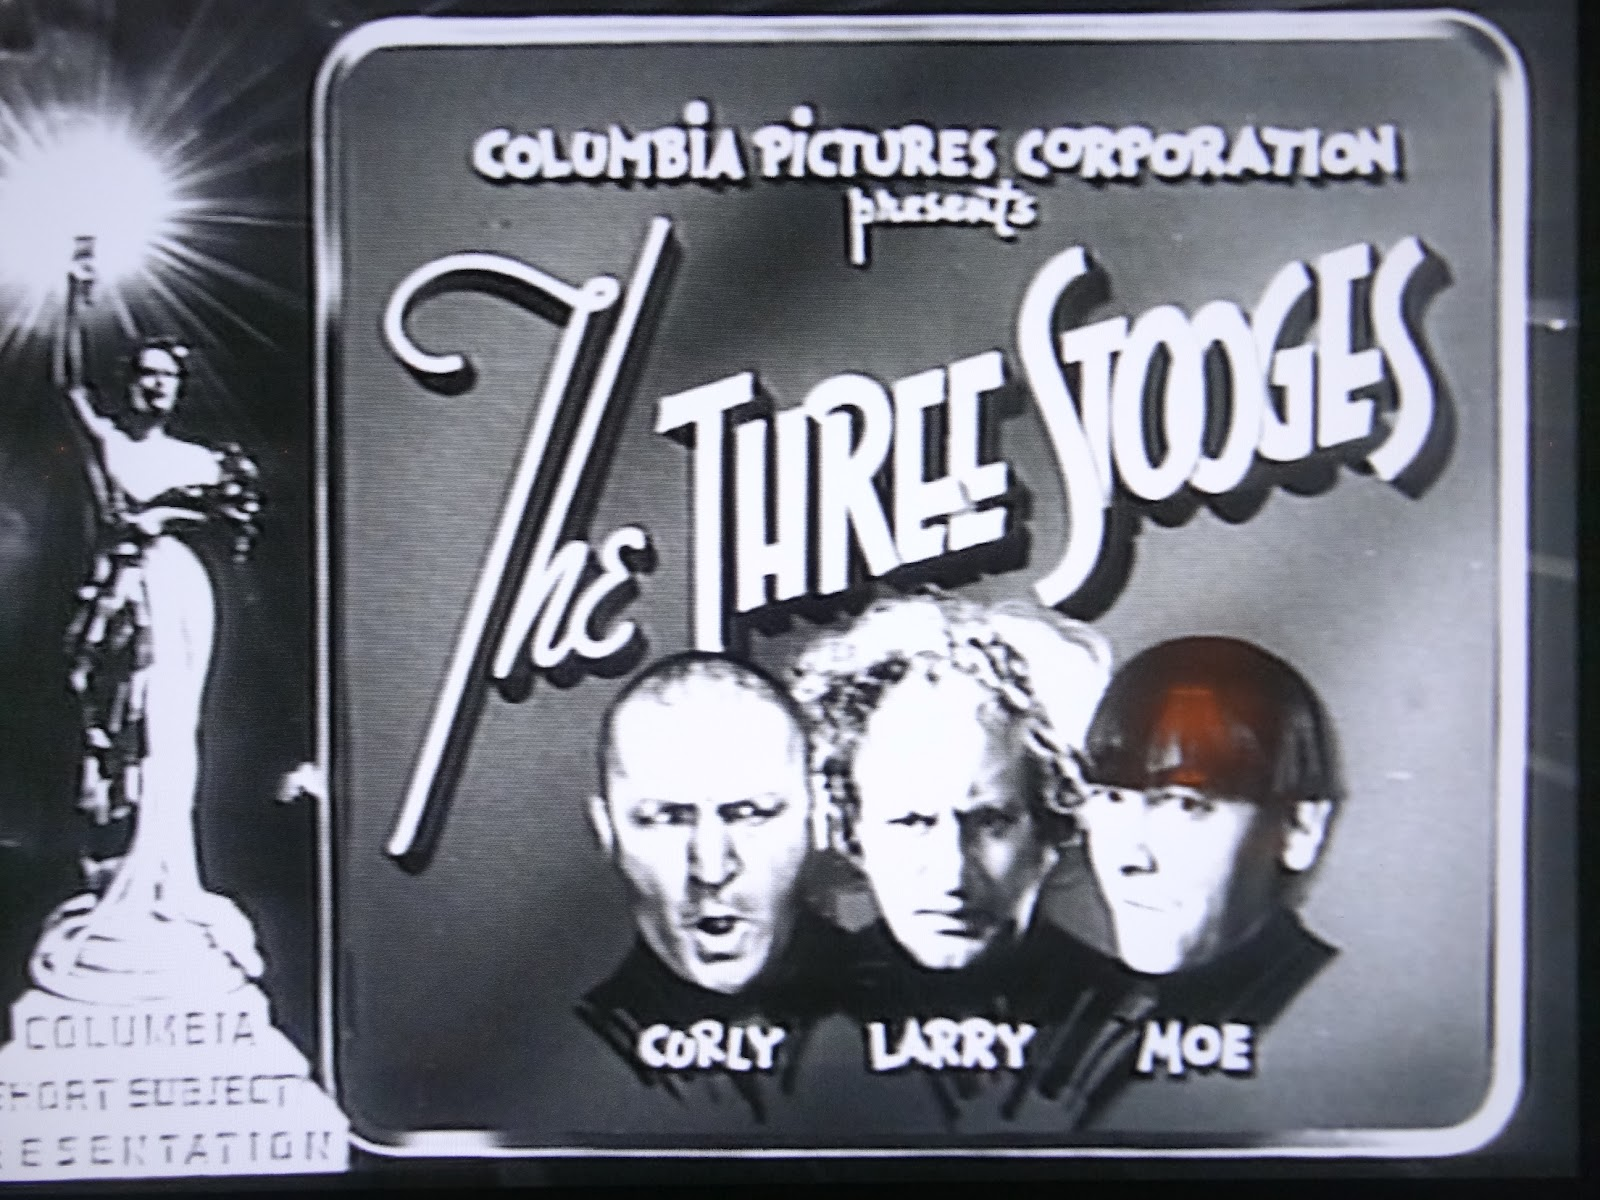 http://4.bp.blogspot.com/-f5PT_MzAyO0/T4htk381hbI/AAAAAAAADF0/jDXyBSF9rP4/s1600/The+Three+Stooges+Columbia+Short+Title+Screen+Moe+Larry+Curly.JPG